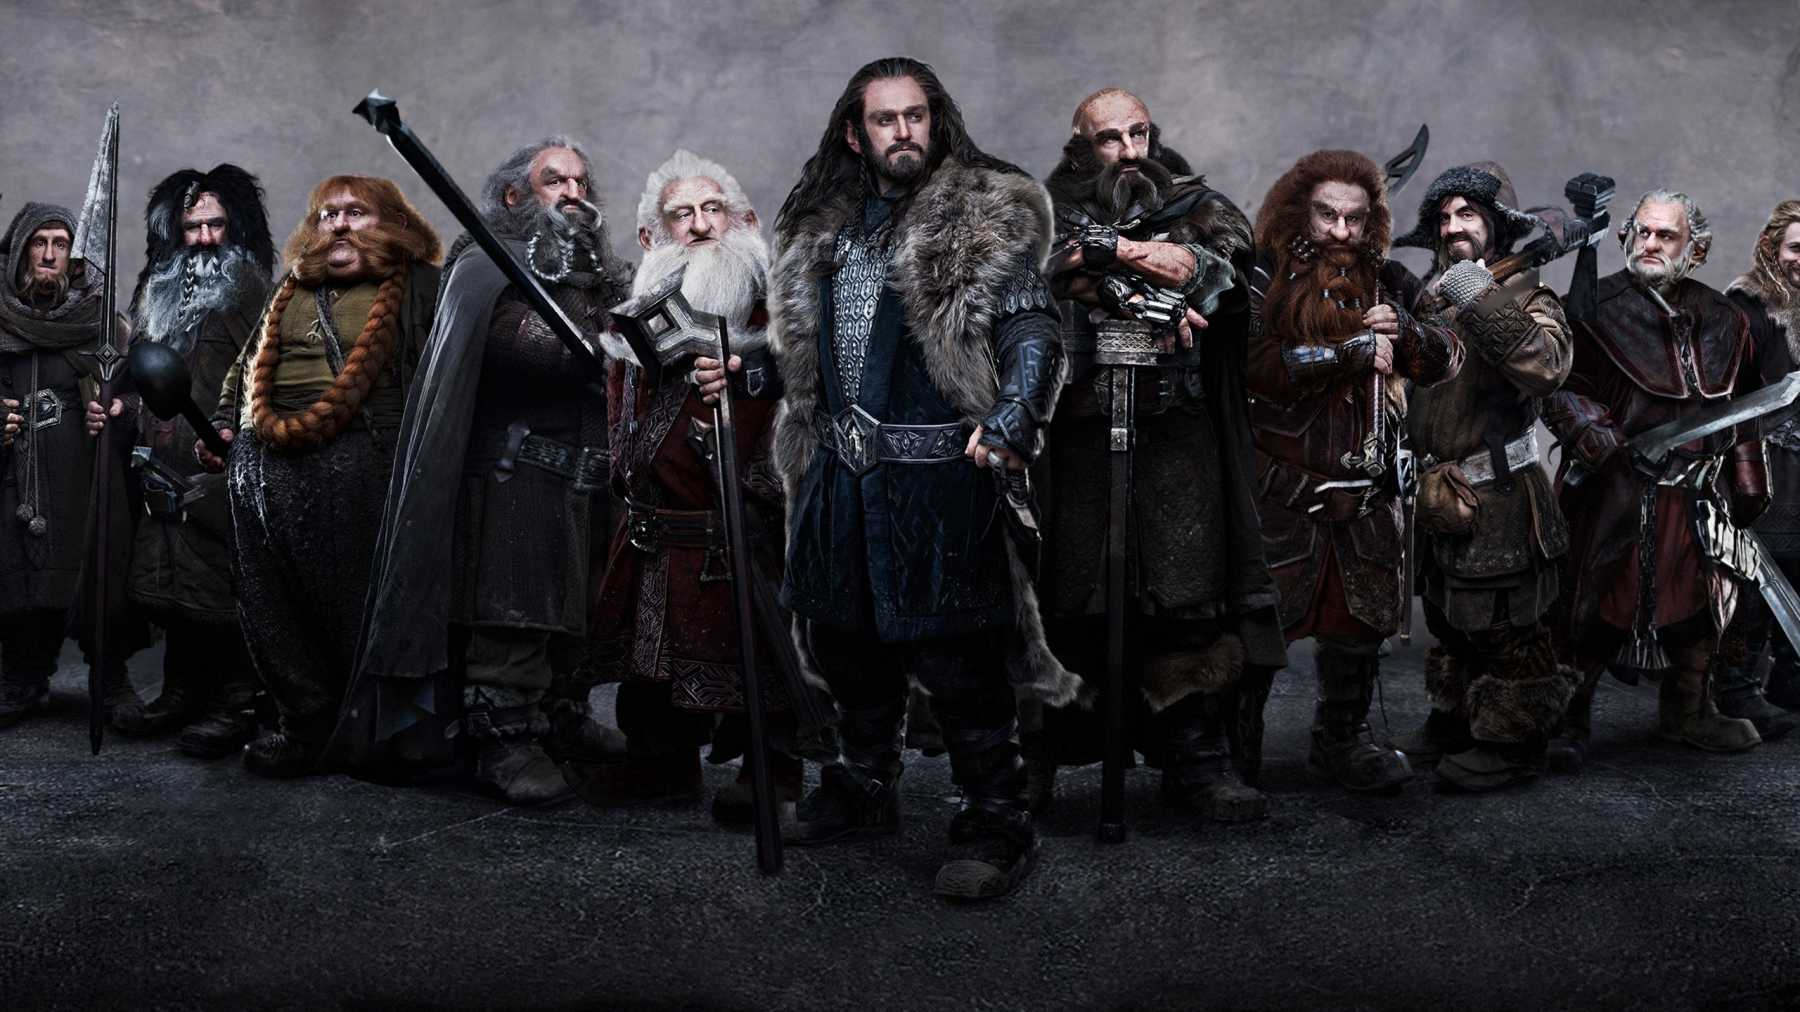 'Hobbit' Fans Protest Exclusion Of Dwarves From London Premiere  | Hobbit